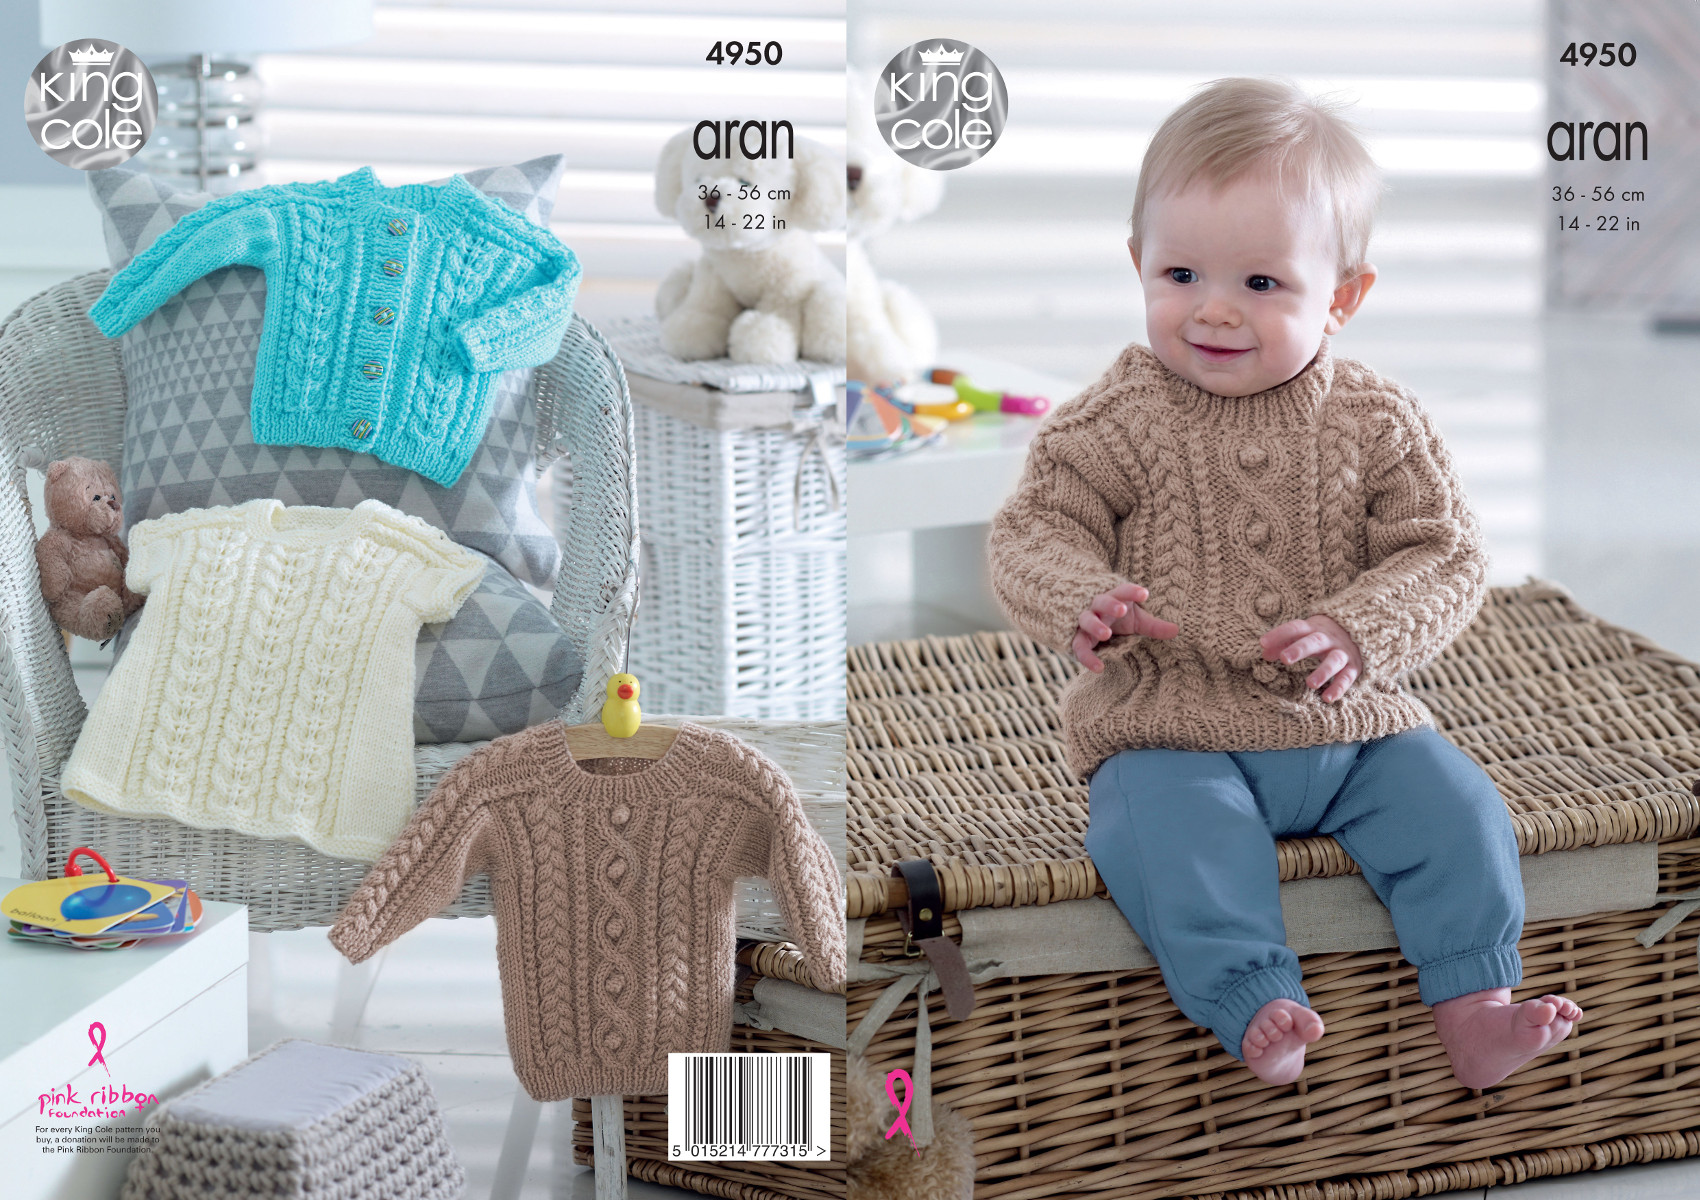 715abe228f91 King Cole Baby Aran Knitting Pattern Cable Knit Sweater Cardigan ...